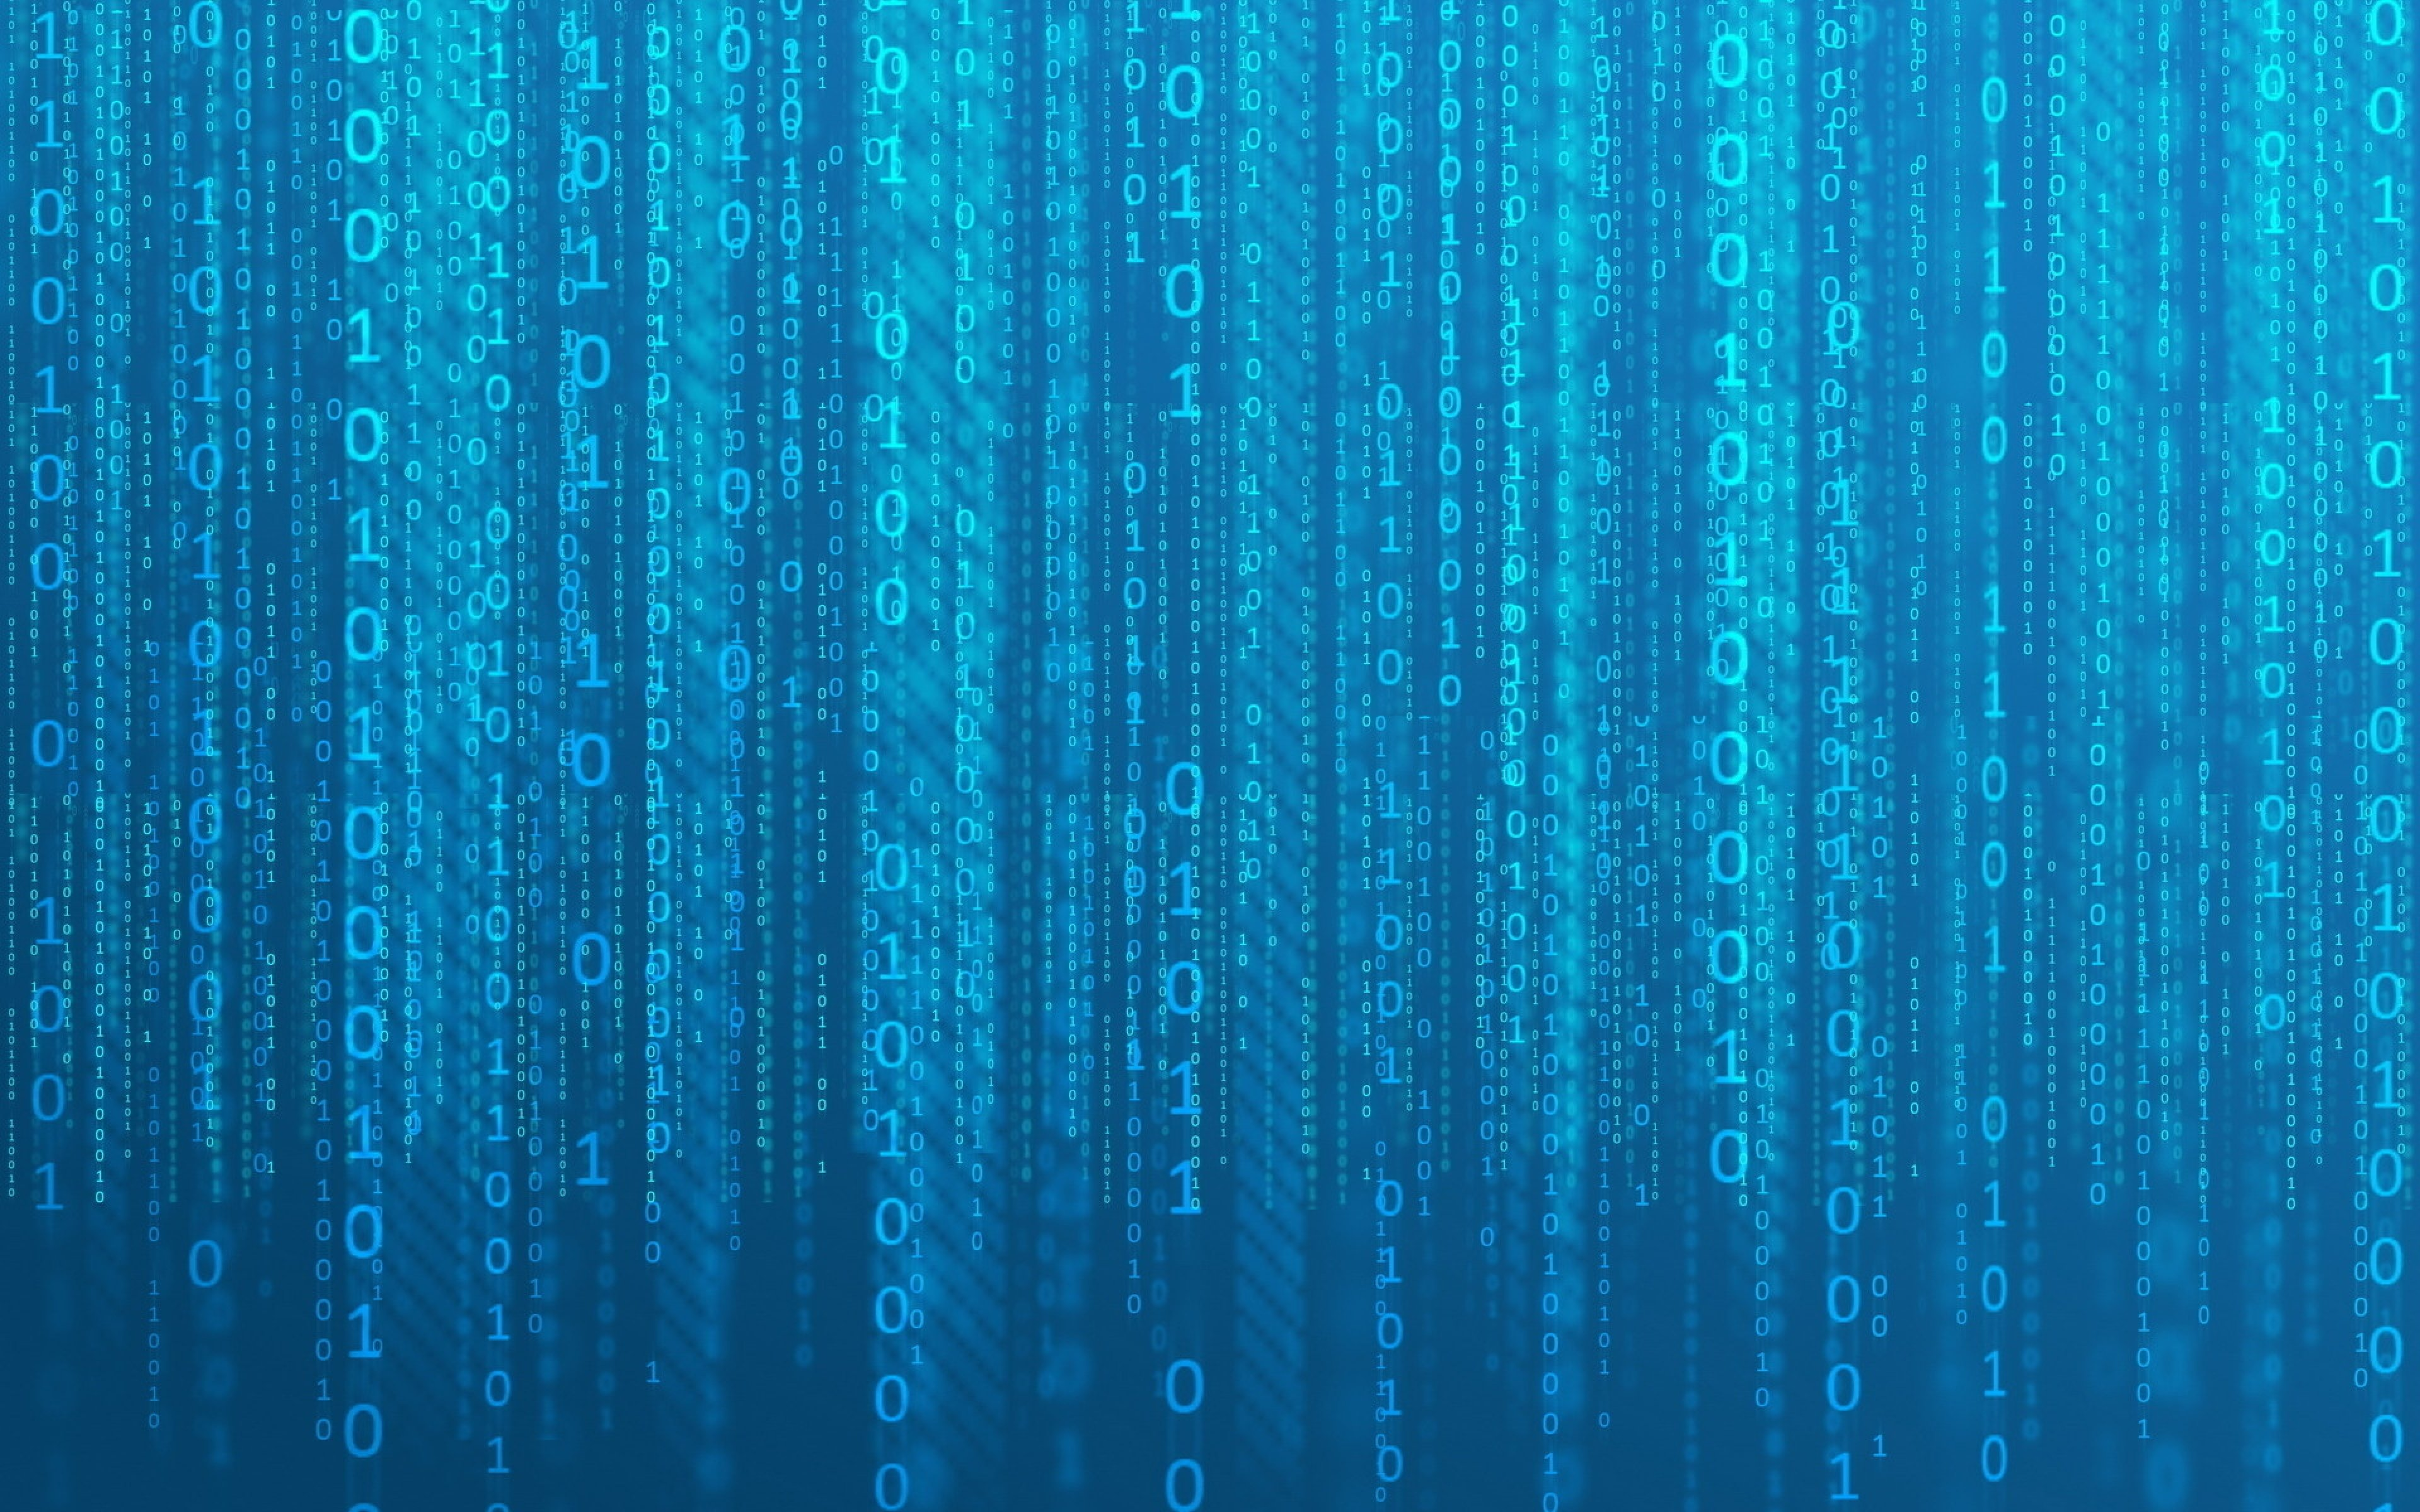 HD Background Binary Numbers 0 1 Matrix Code Blue Abstract Wallpaper 3840x2400